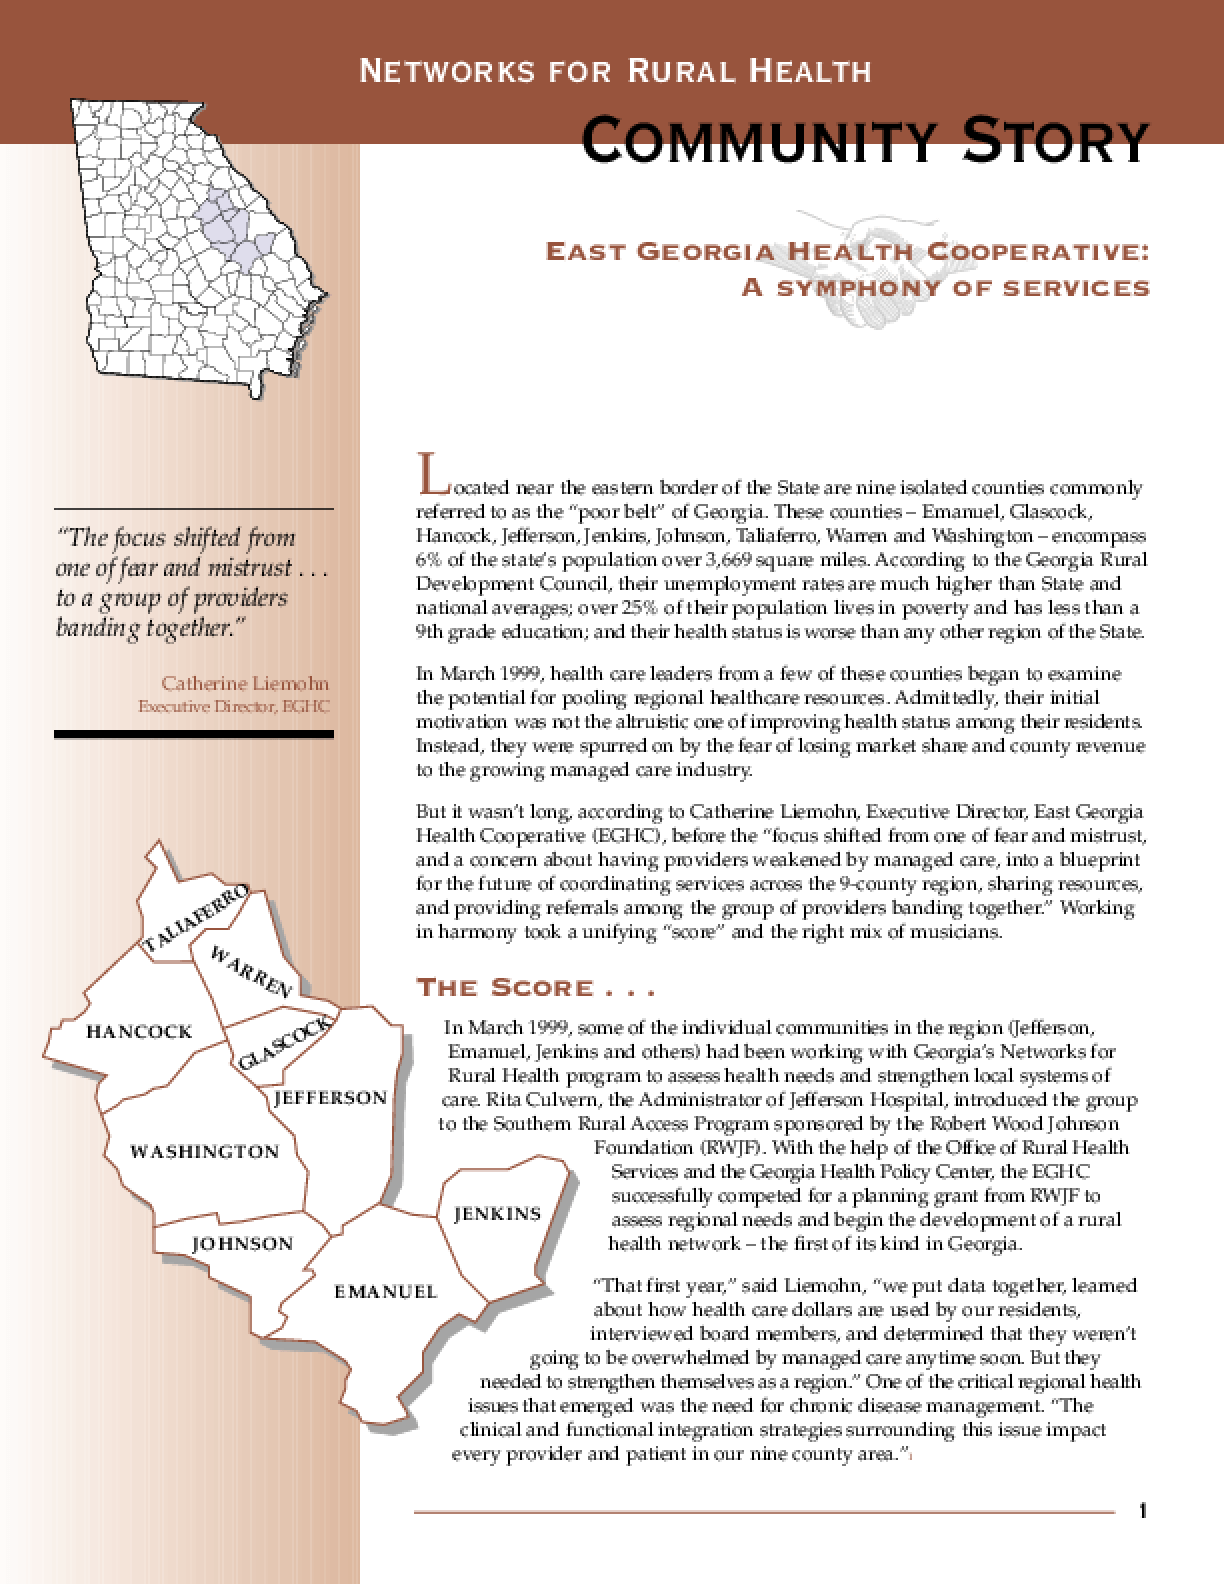 East Georgia Health Cooperative: A Symphony of Services